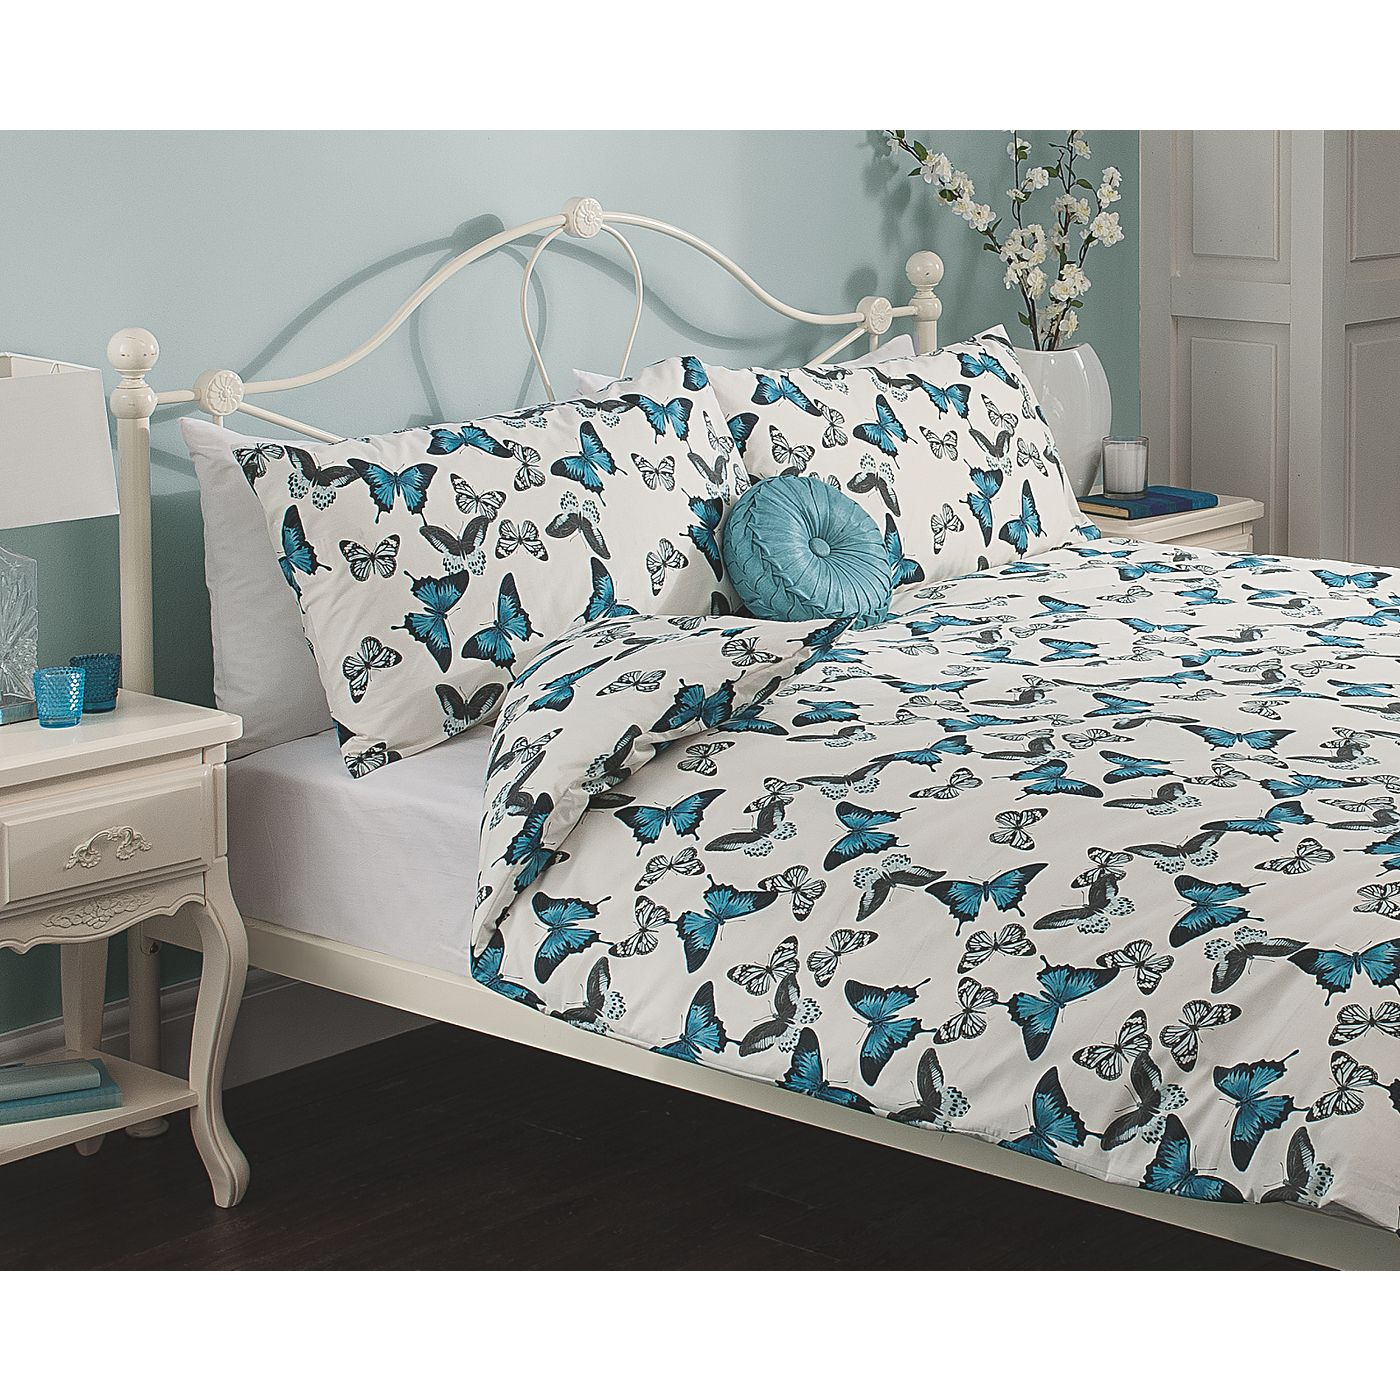 Home Heirloom Butterfly Duvet Range Bedding